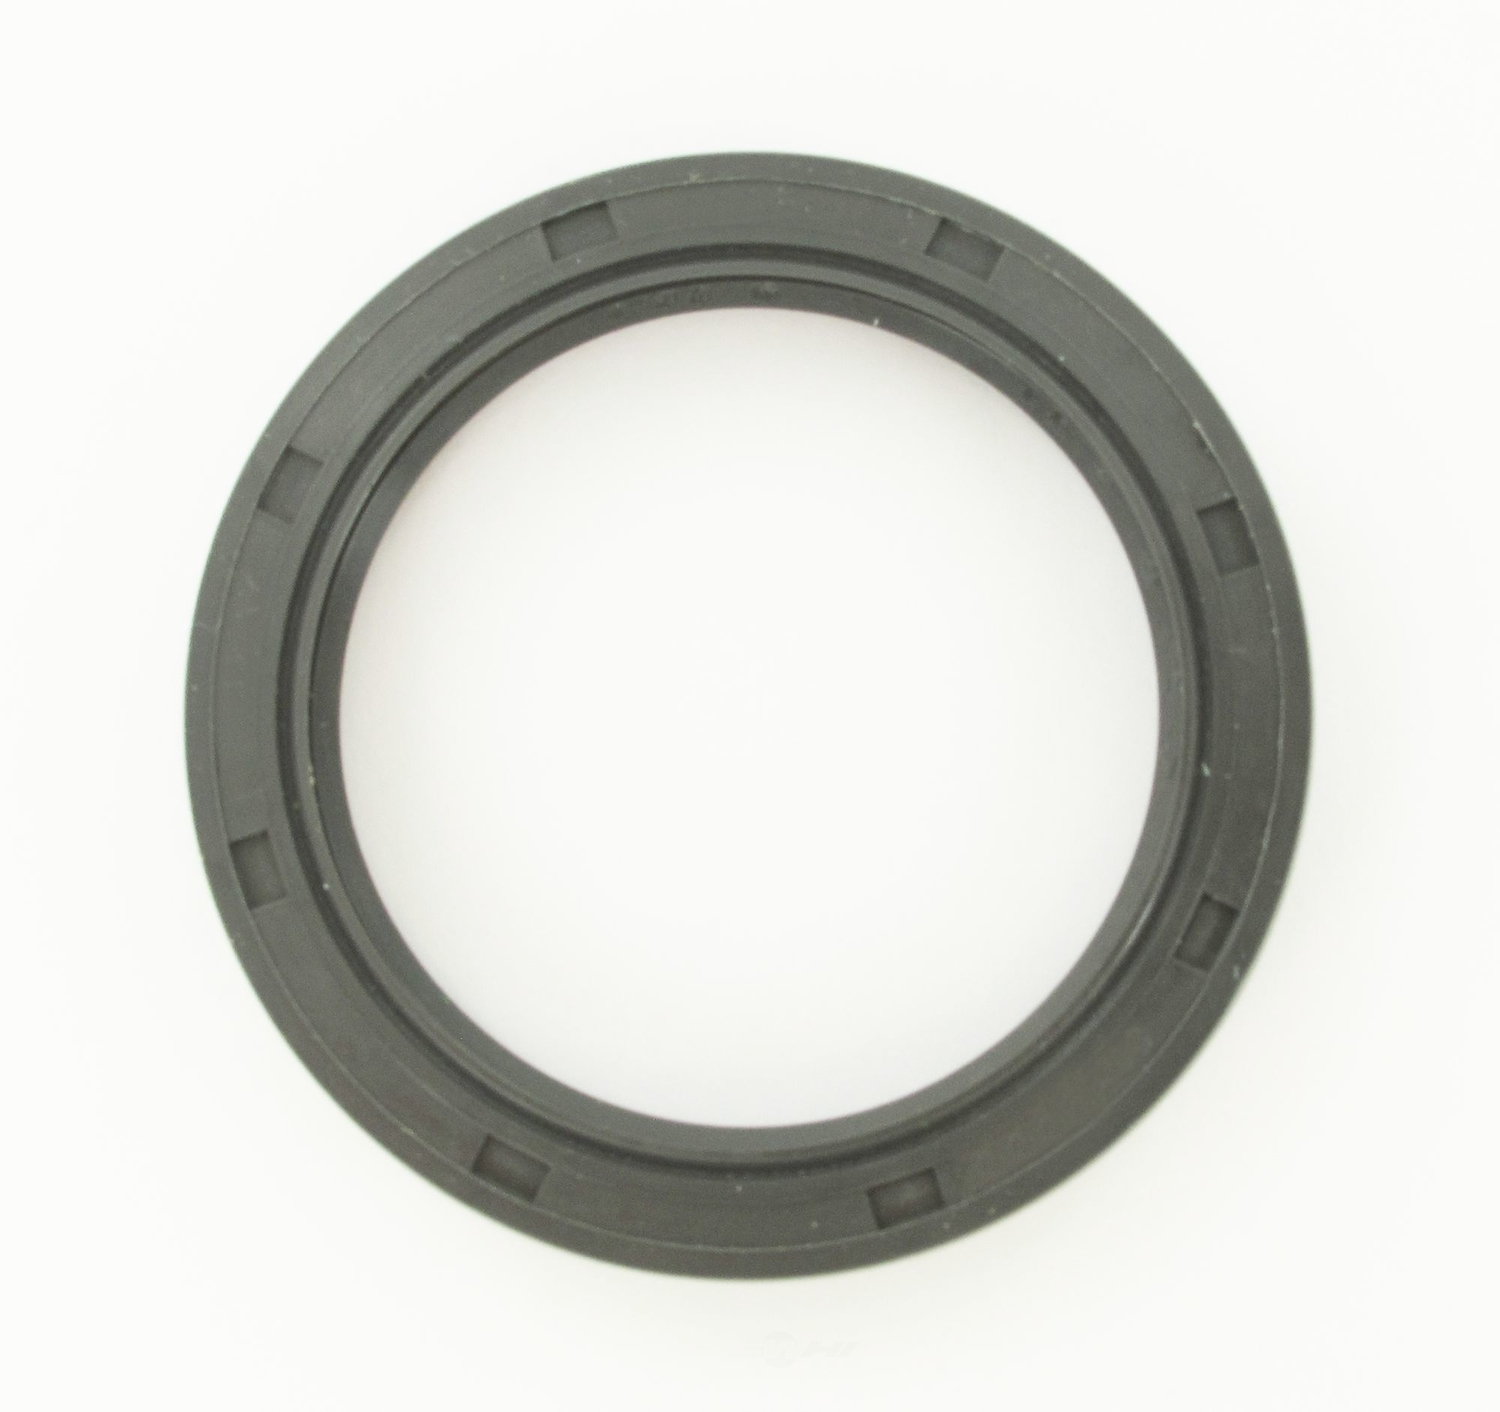 SKF (CHICAGO RAWHIDE) - Rear Seal-MT - SKF 19601